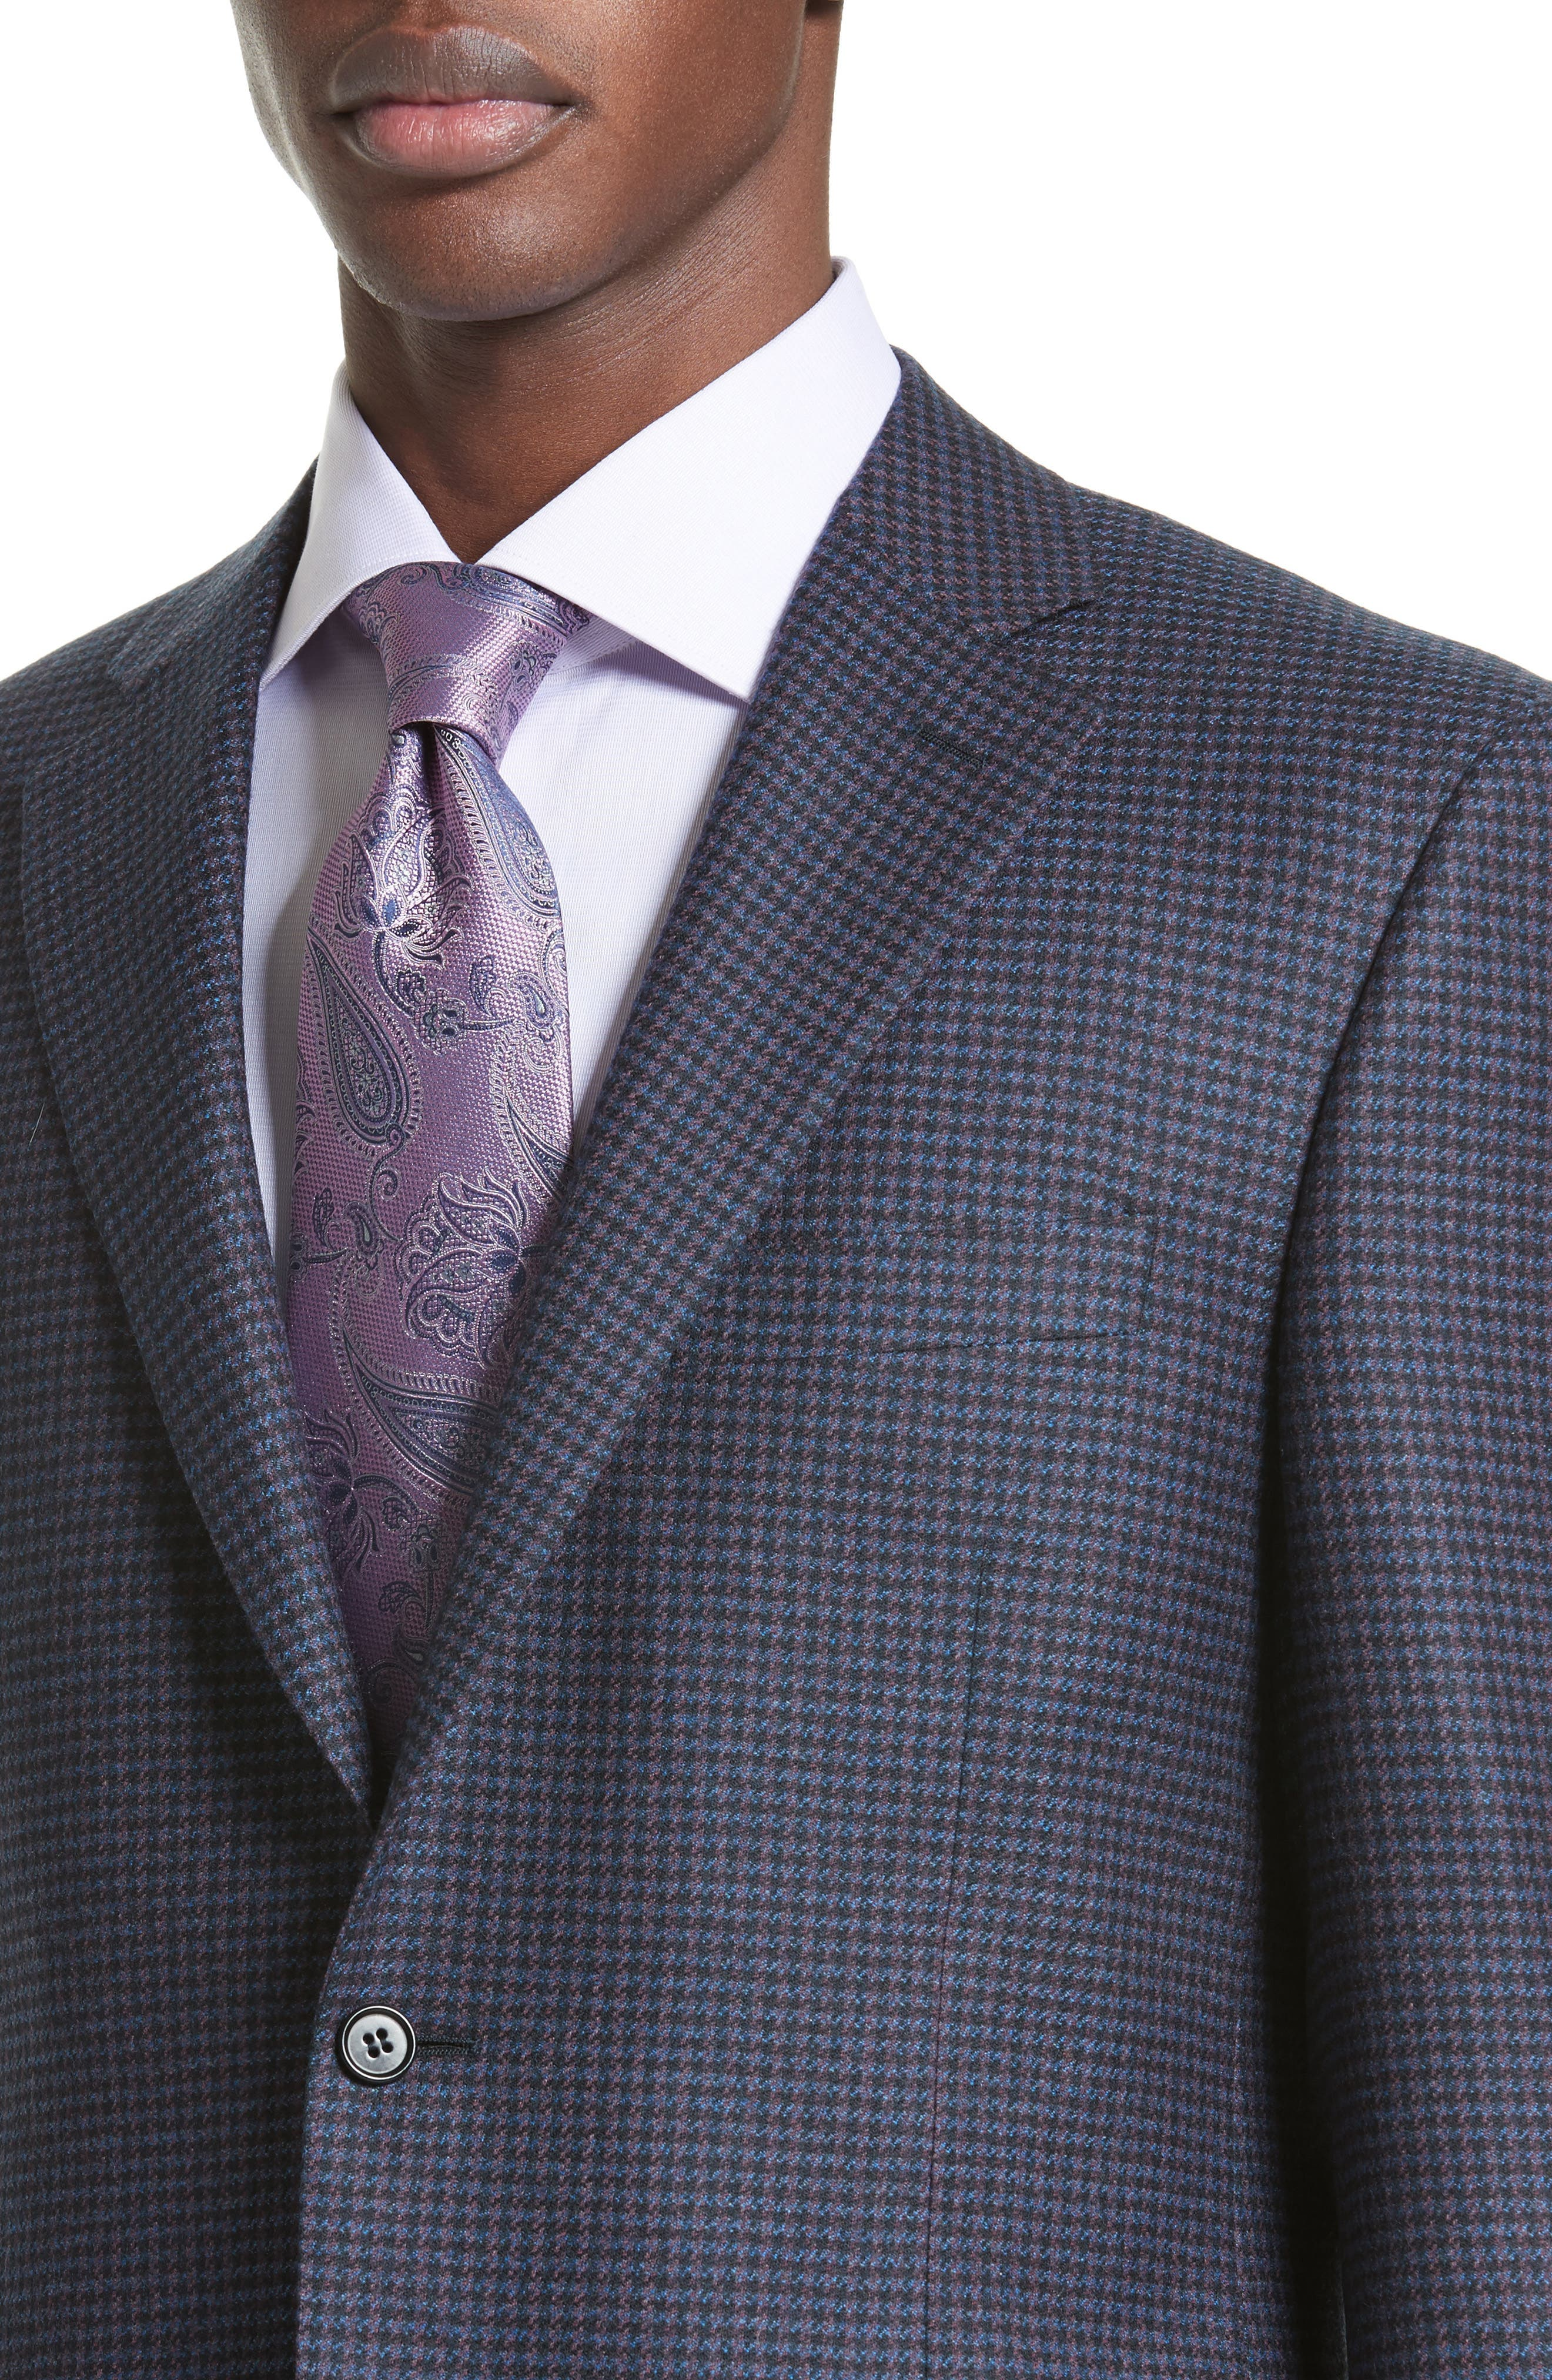 Classic Fit Houndstooth Wool Sport Coat,                             Alternate thumbnail 4, color,                             400